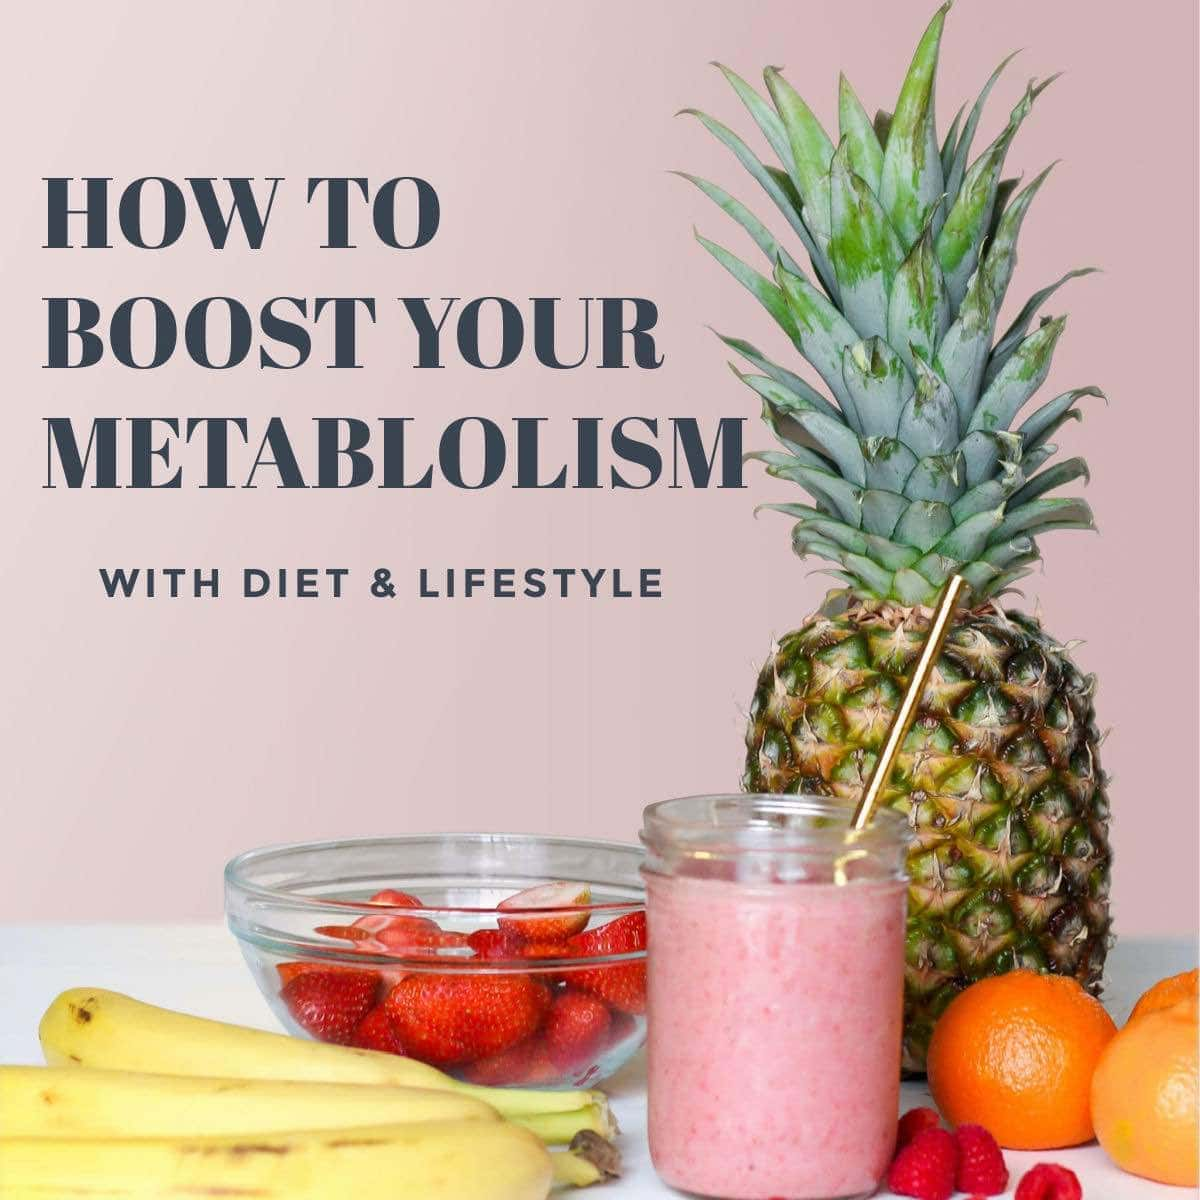 how to boost your metabolism text overlay on a picture of fruit and a smoothie